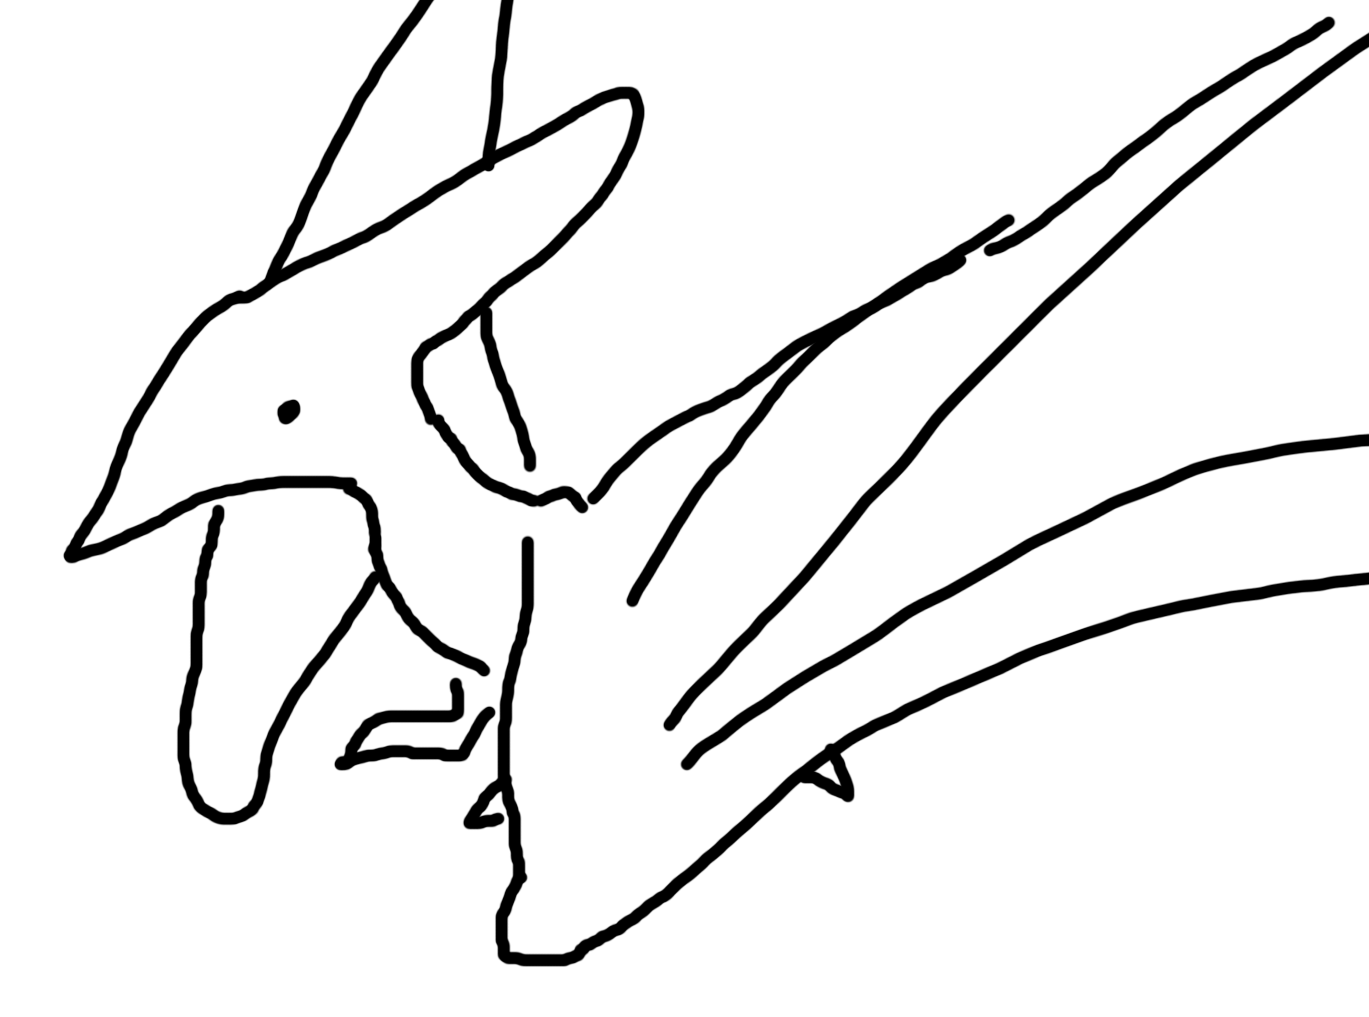 Pterodactyl Drawing at GetDrawings.com | Free for personal use ...